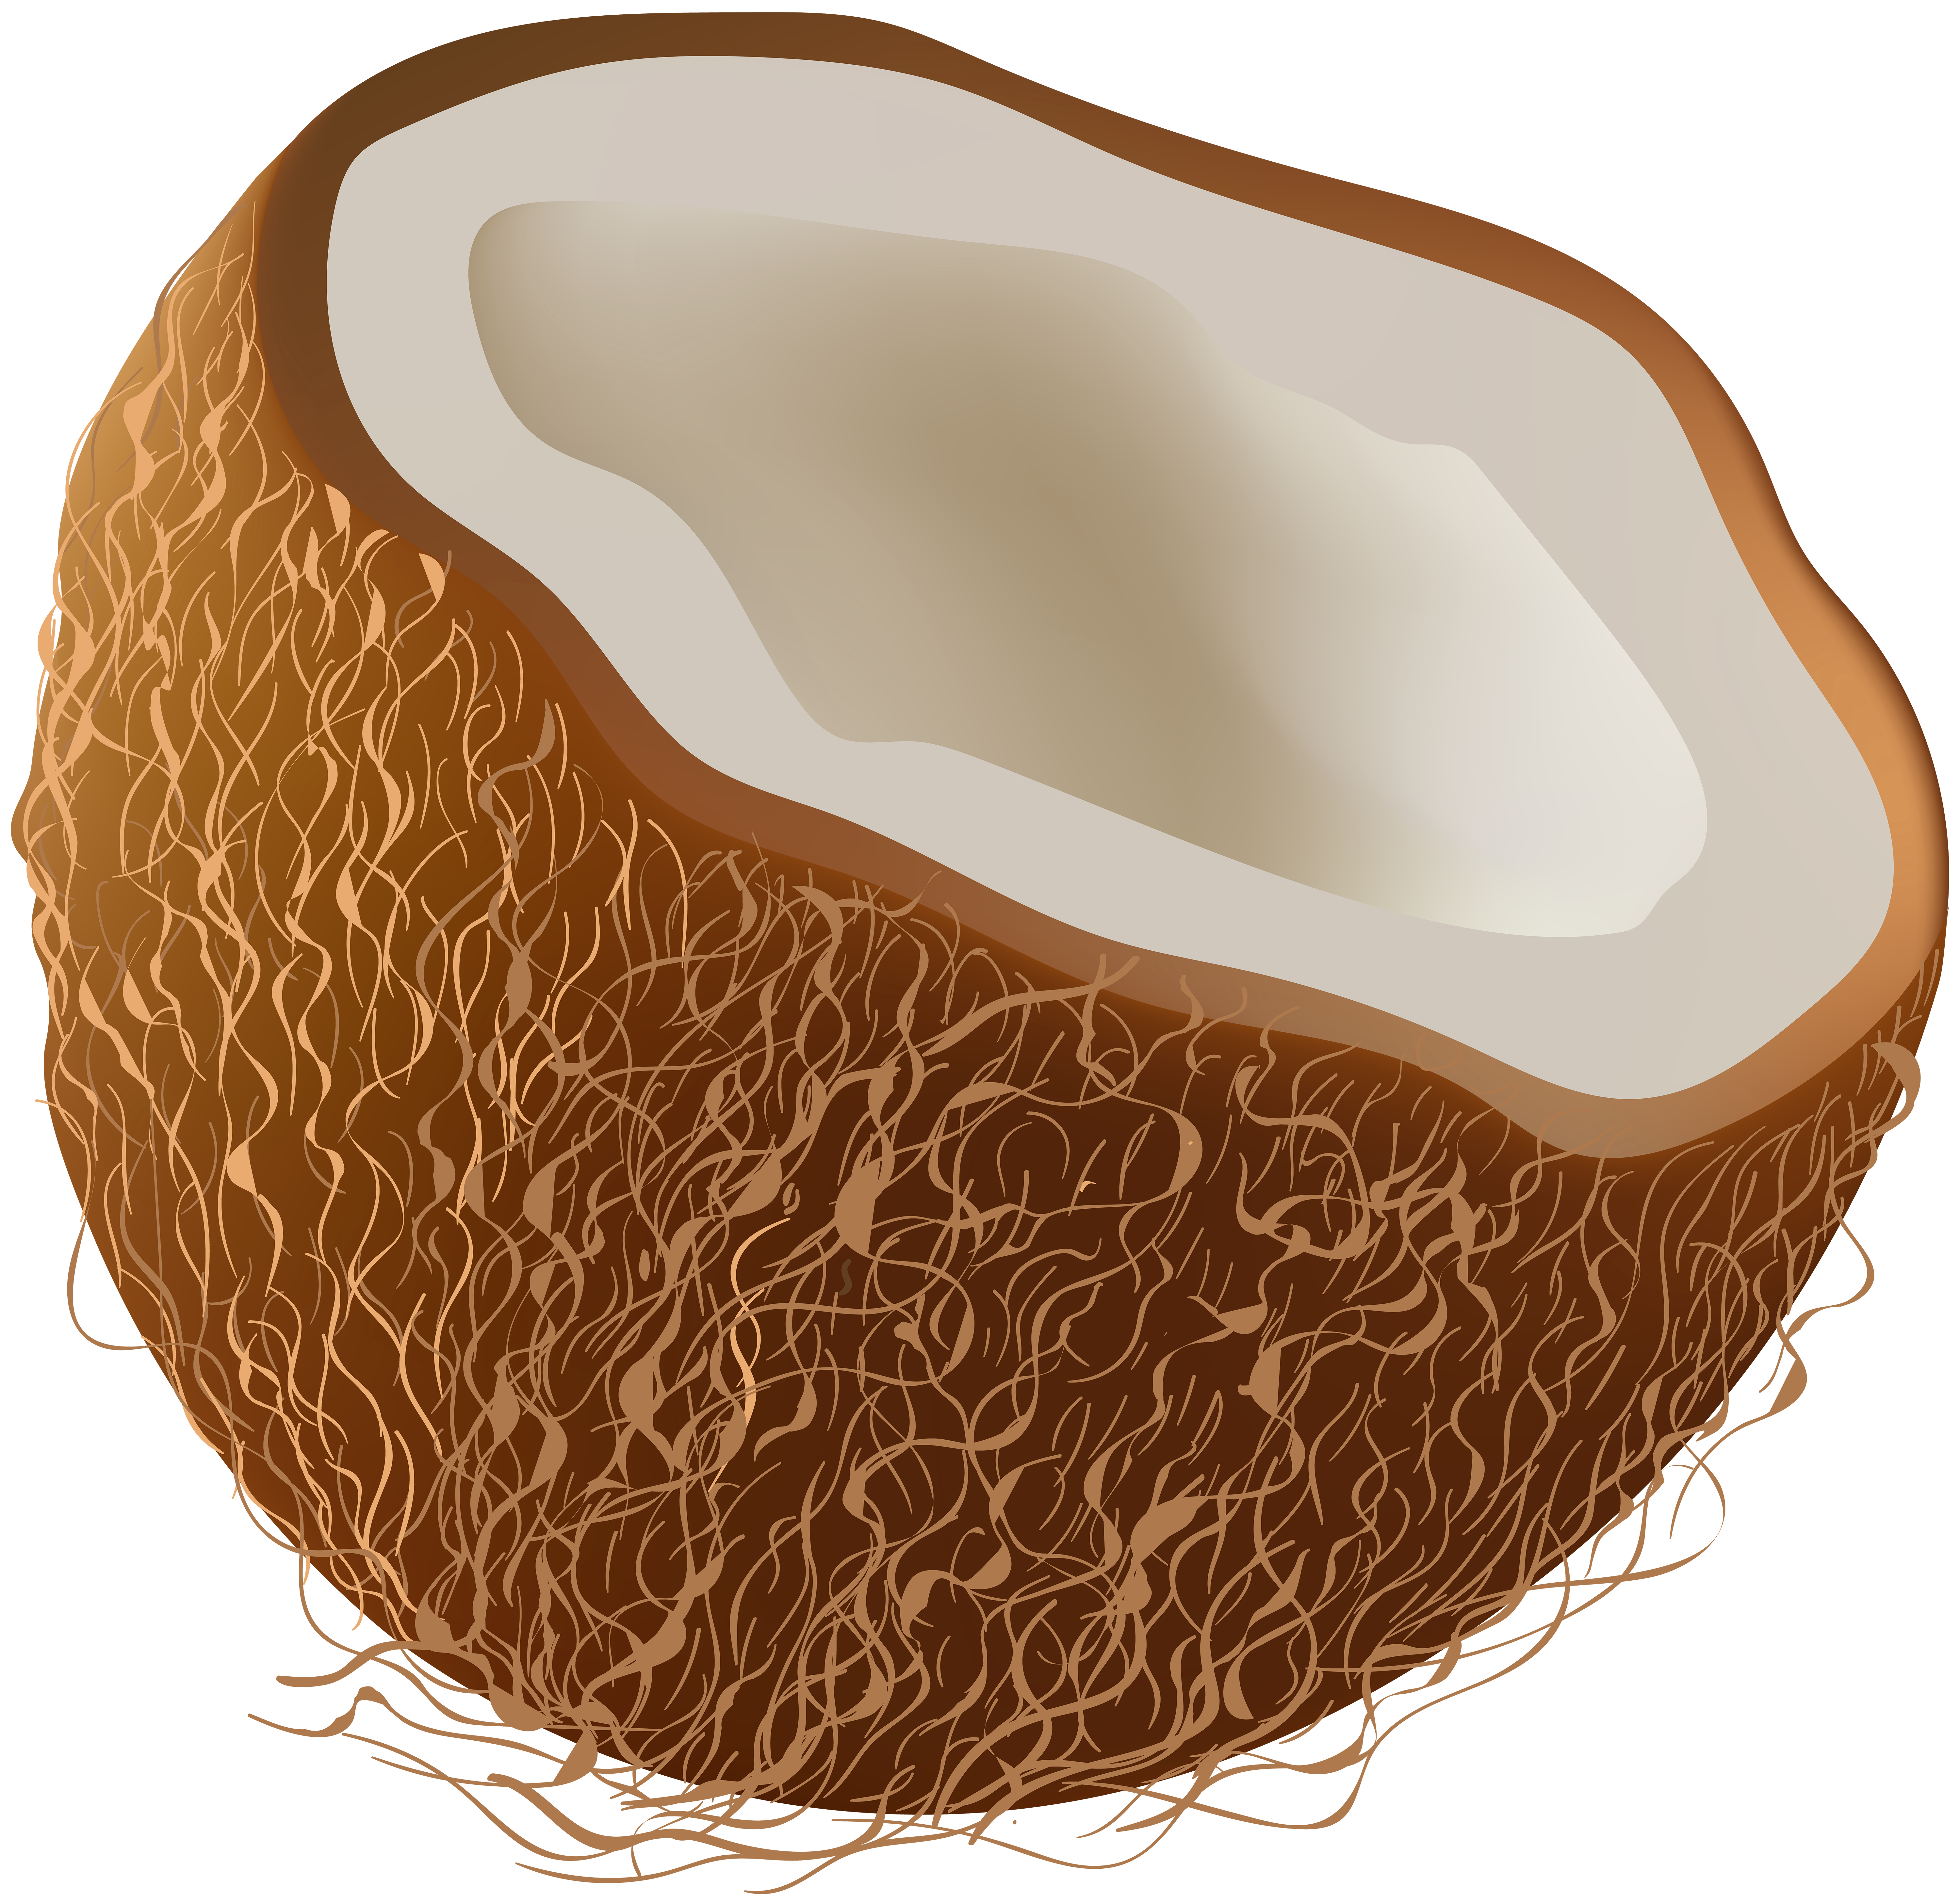 banner library Transparent coconut. Clip art image gallery.